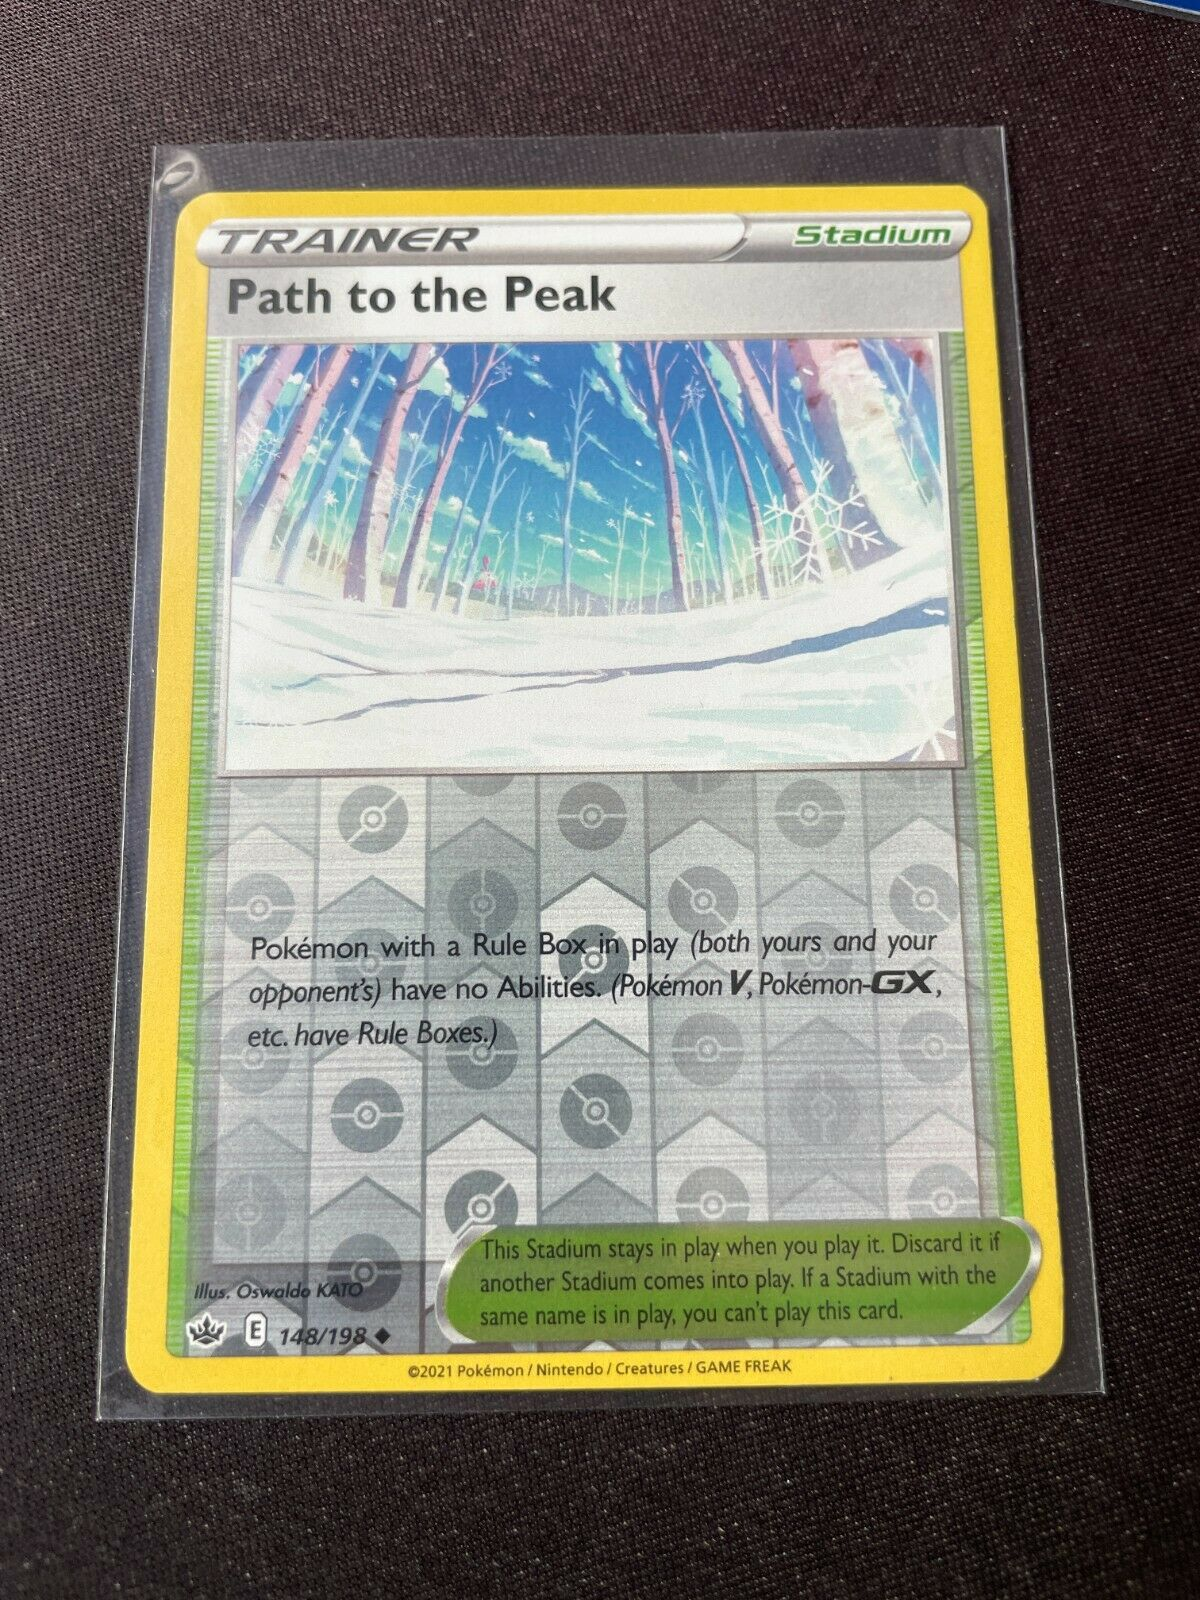 Pokemon TCG Chilling Reign 148/198 Path to the Peak Card Reverse Holo Mint